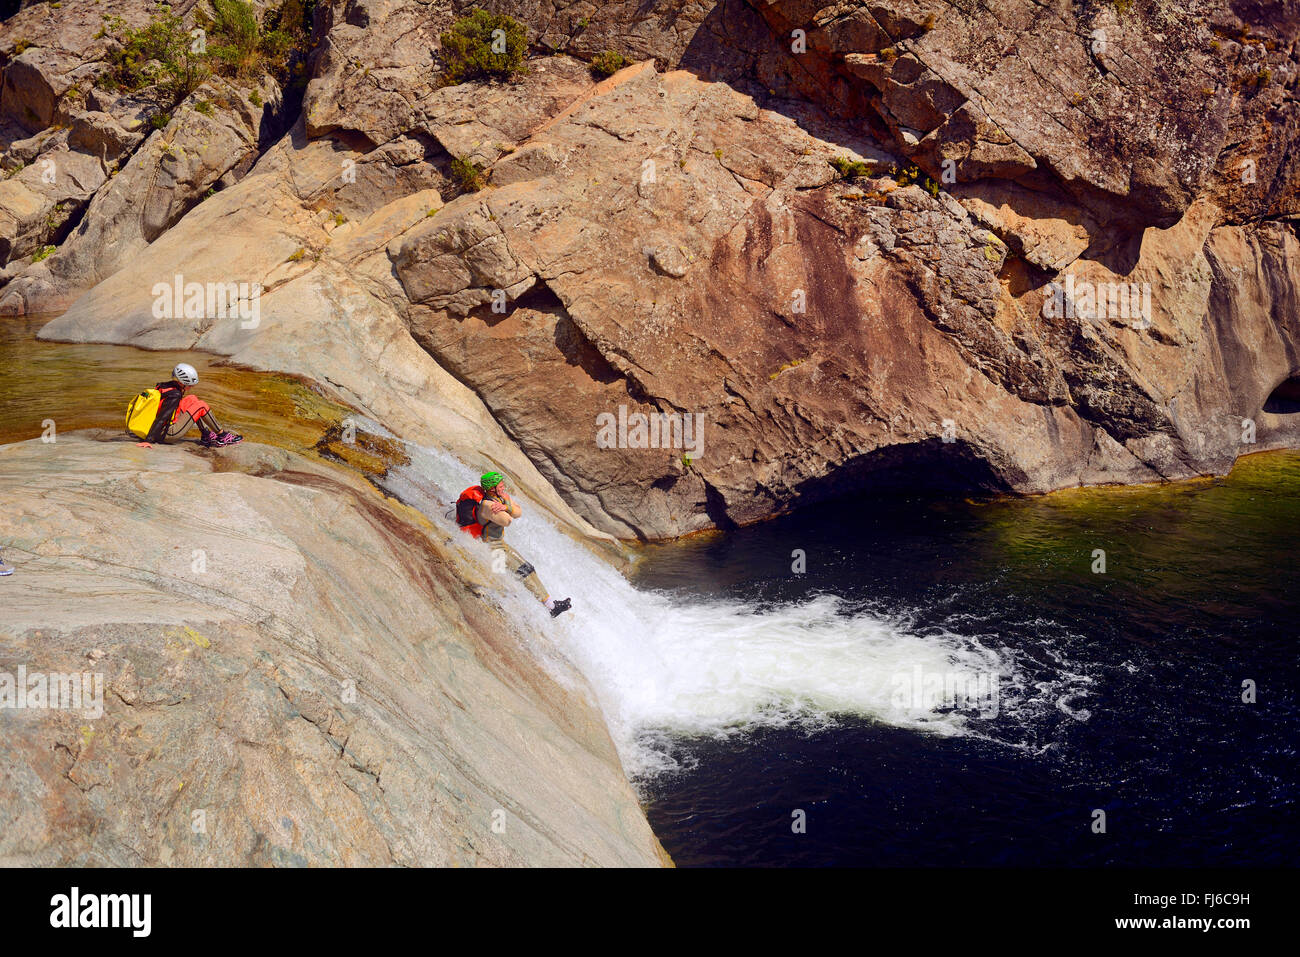 canyoning in the canyon of Travo, France, Corsica, Alta Rocca - Stock Image